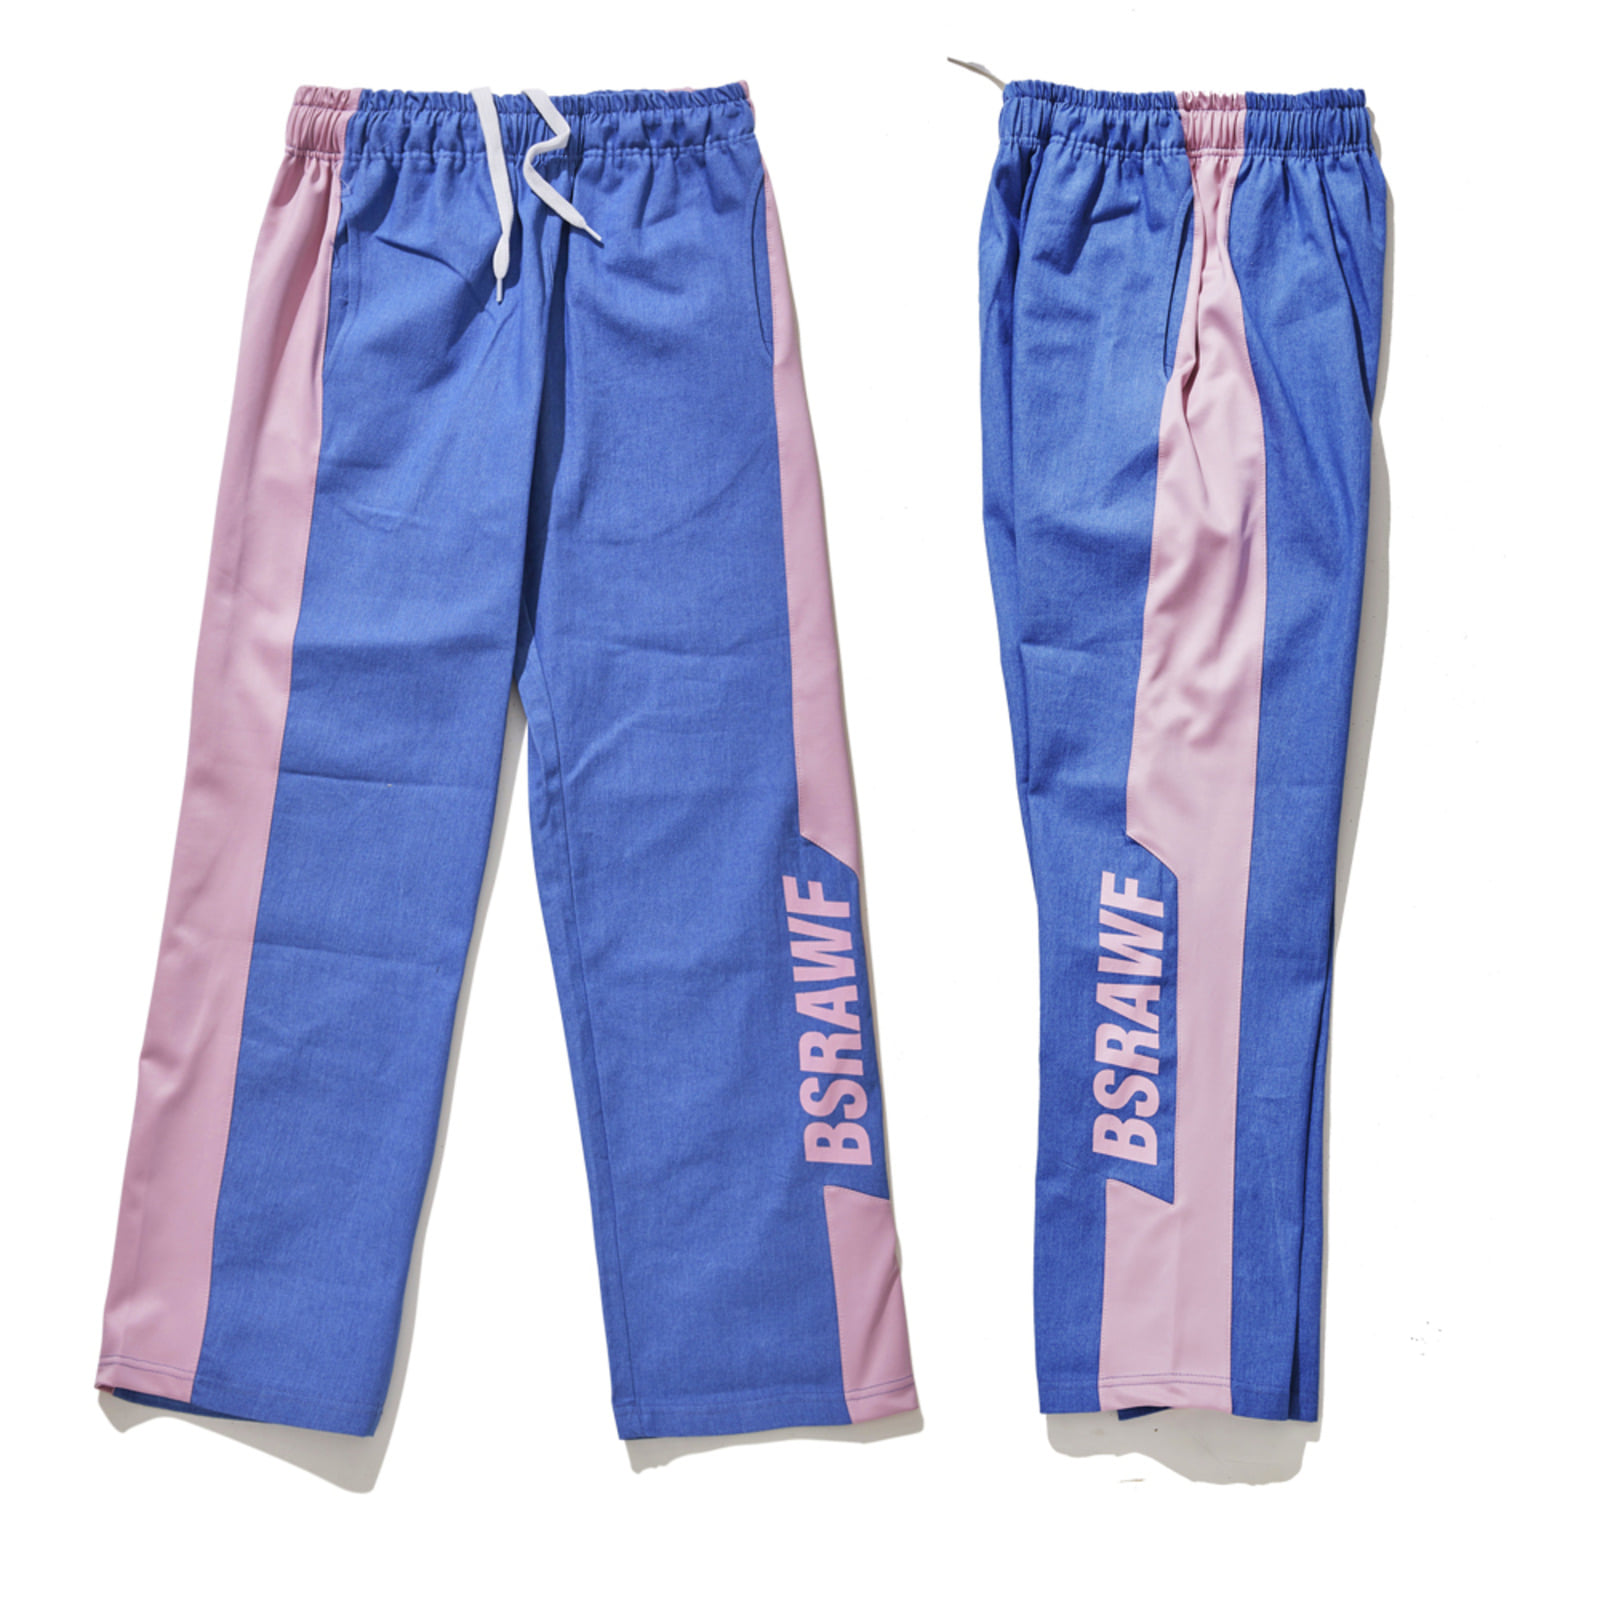 BSRAWF TRACK PANTS DENIM